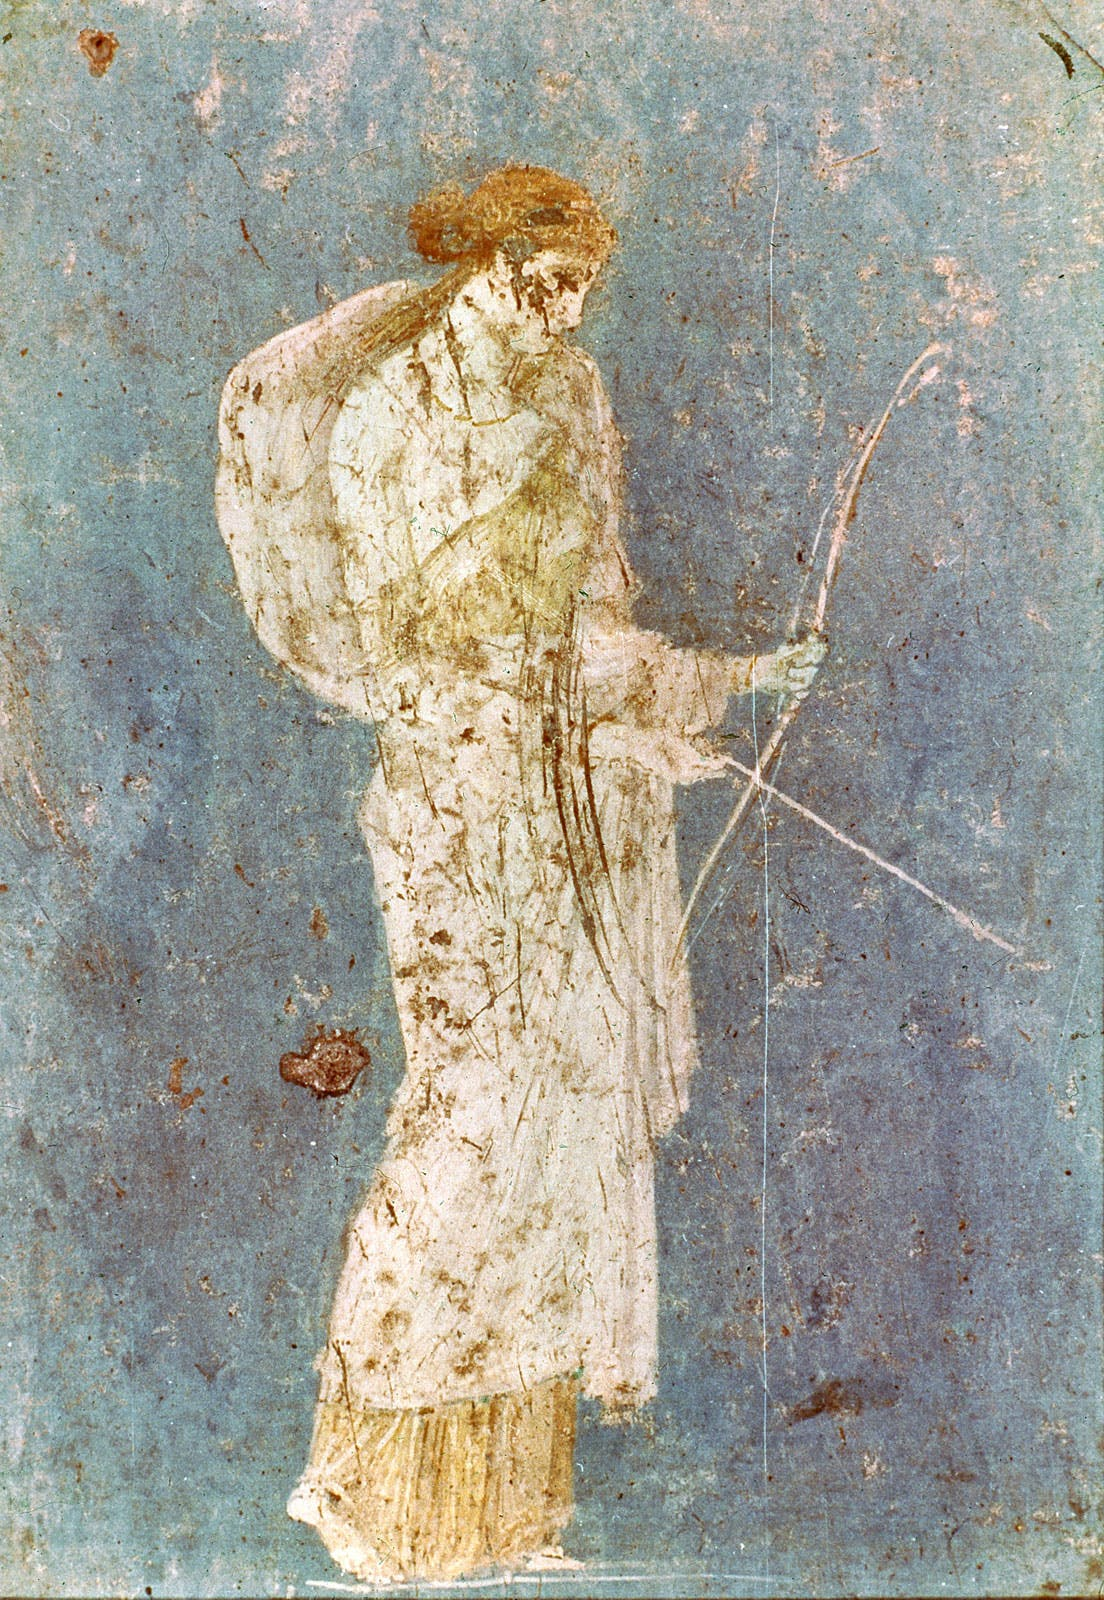 An old and damaged wall painting of a woman in white holding a bow and arrow on a blue background.